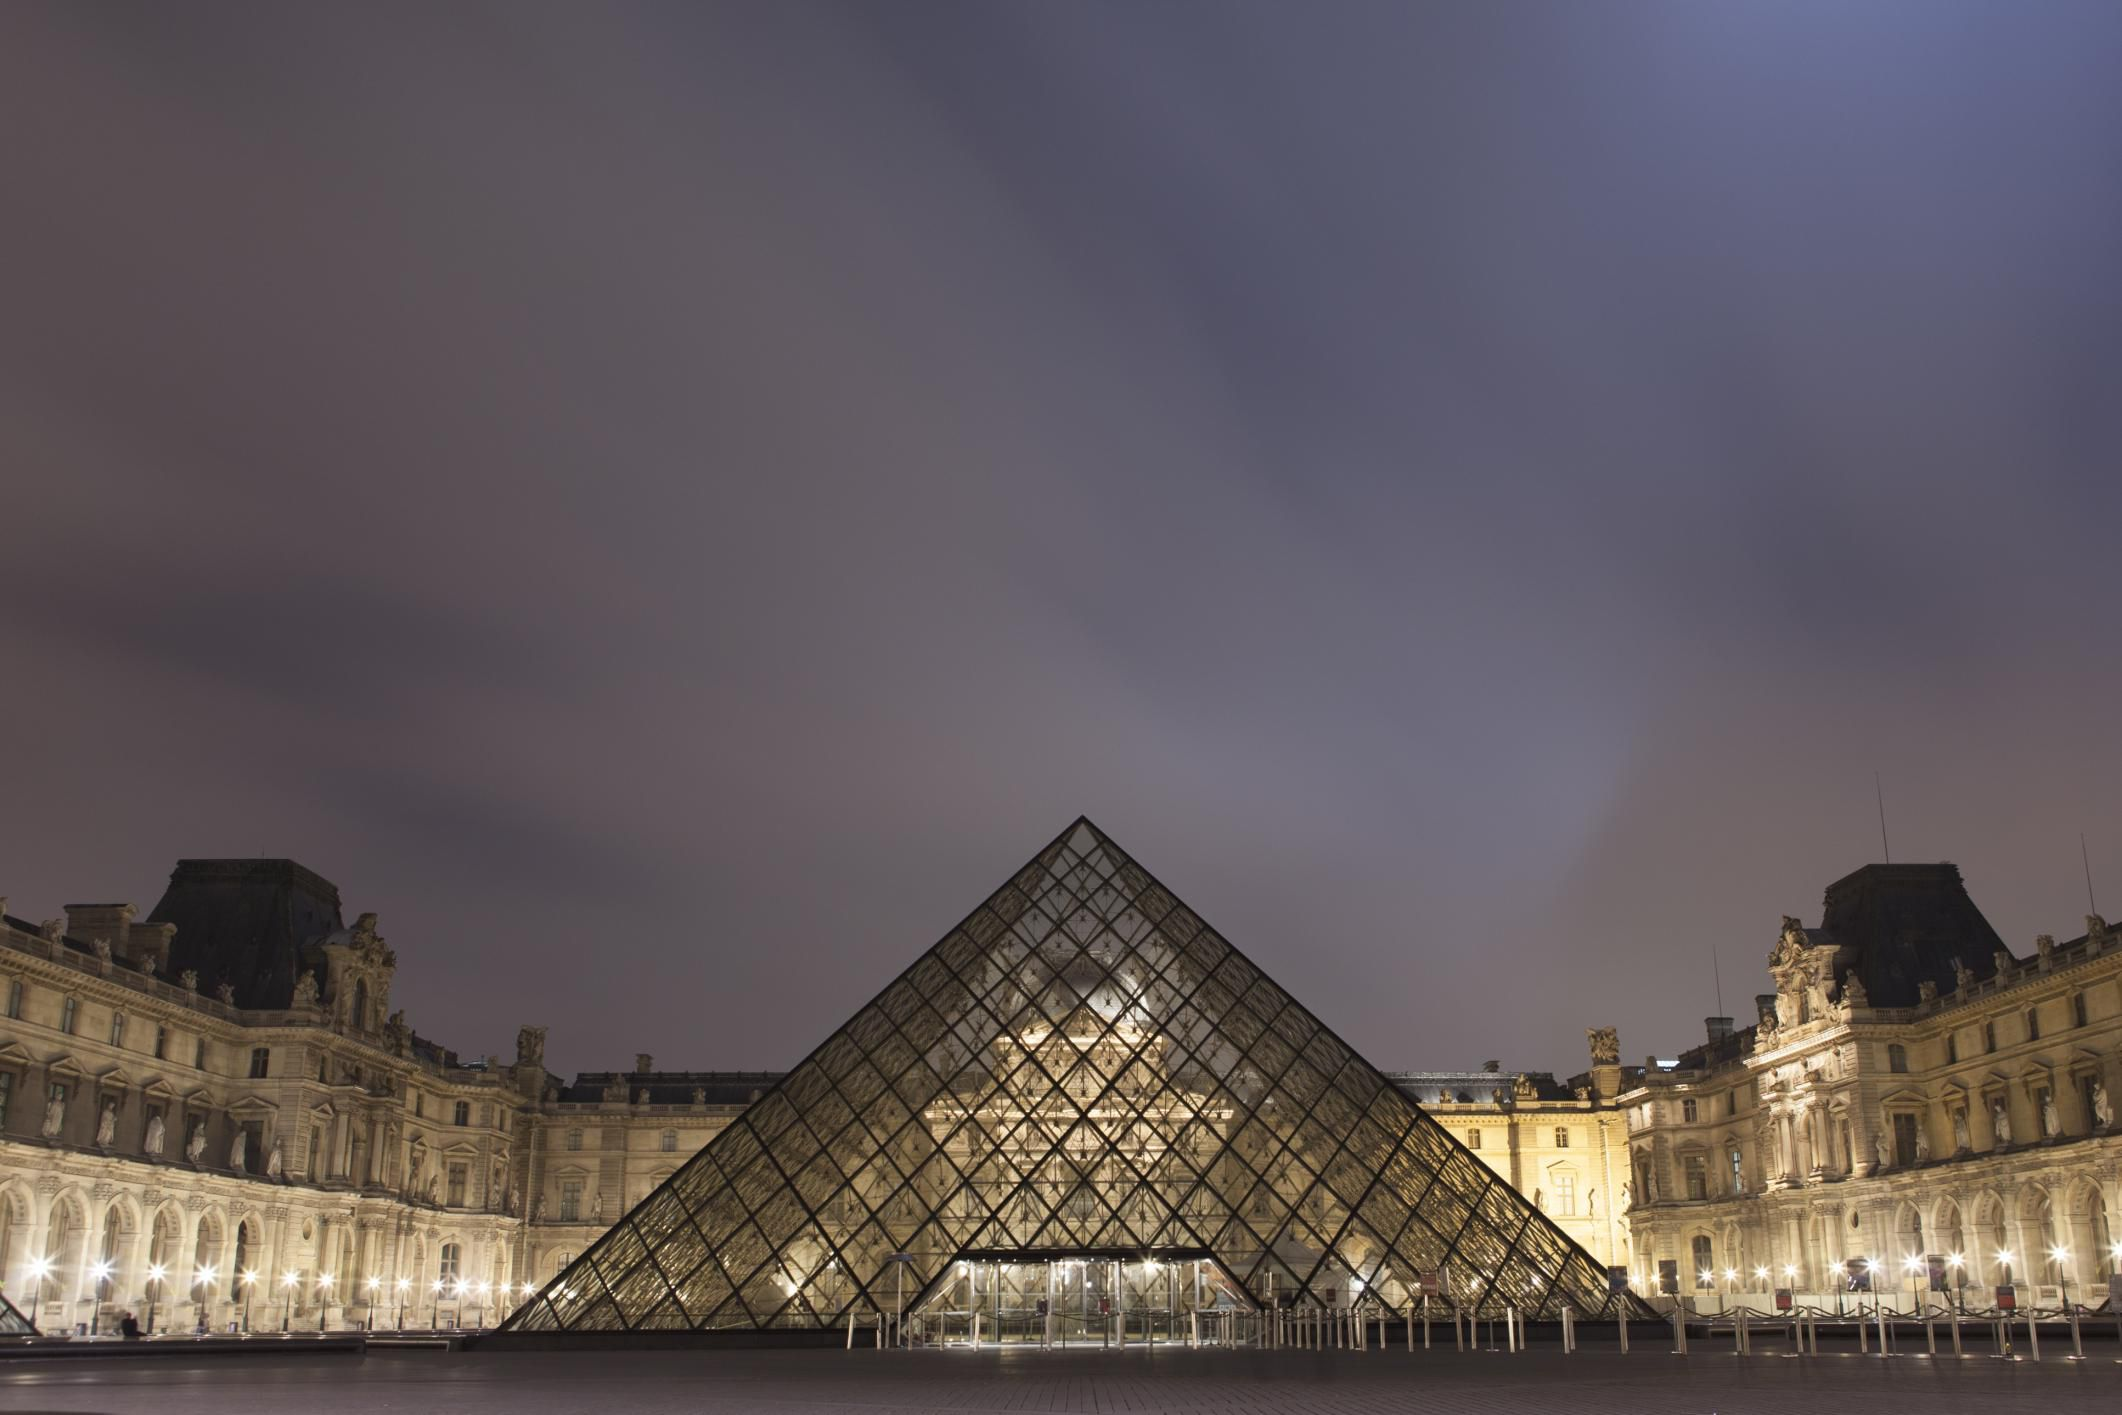 The Louvre Museum in Paris: A Complete Guide for Visitors